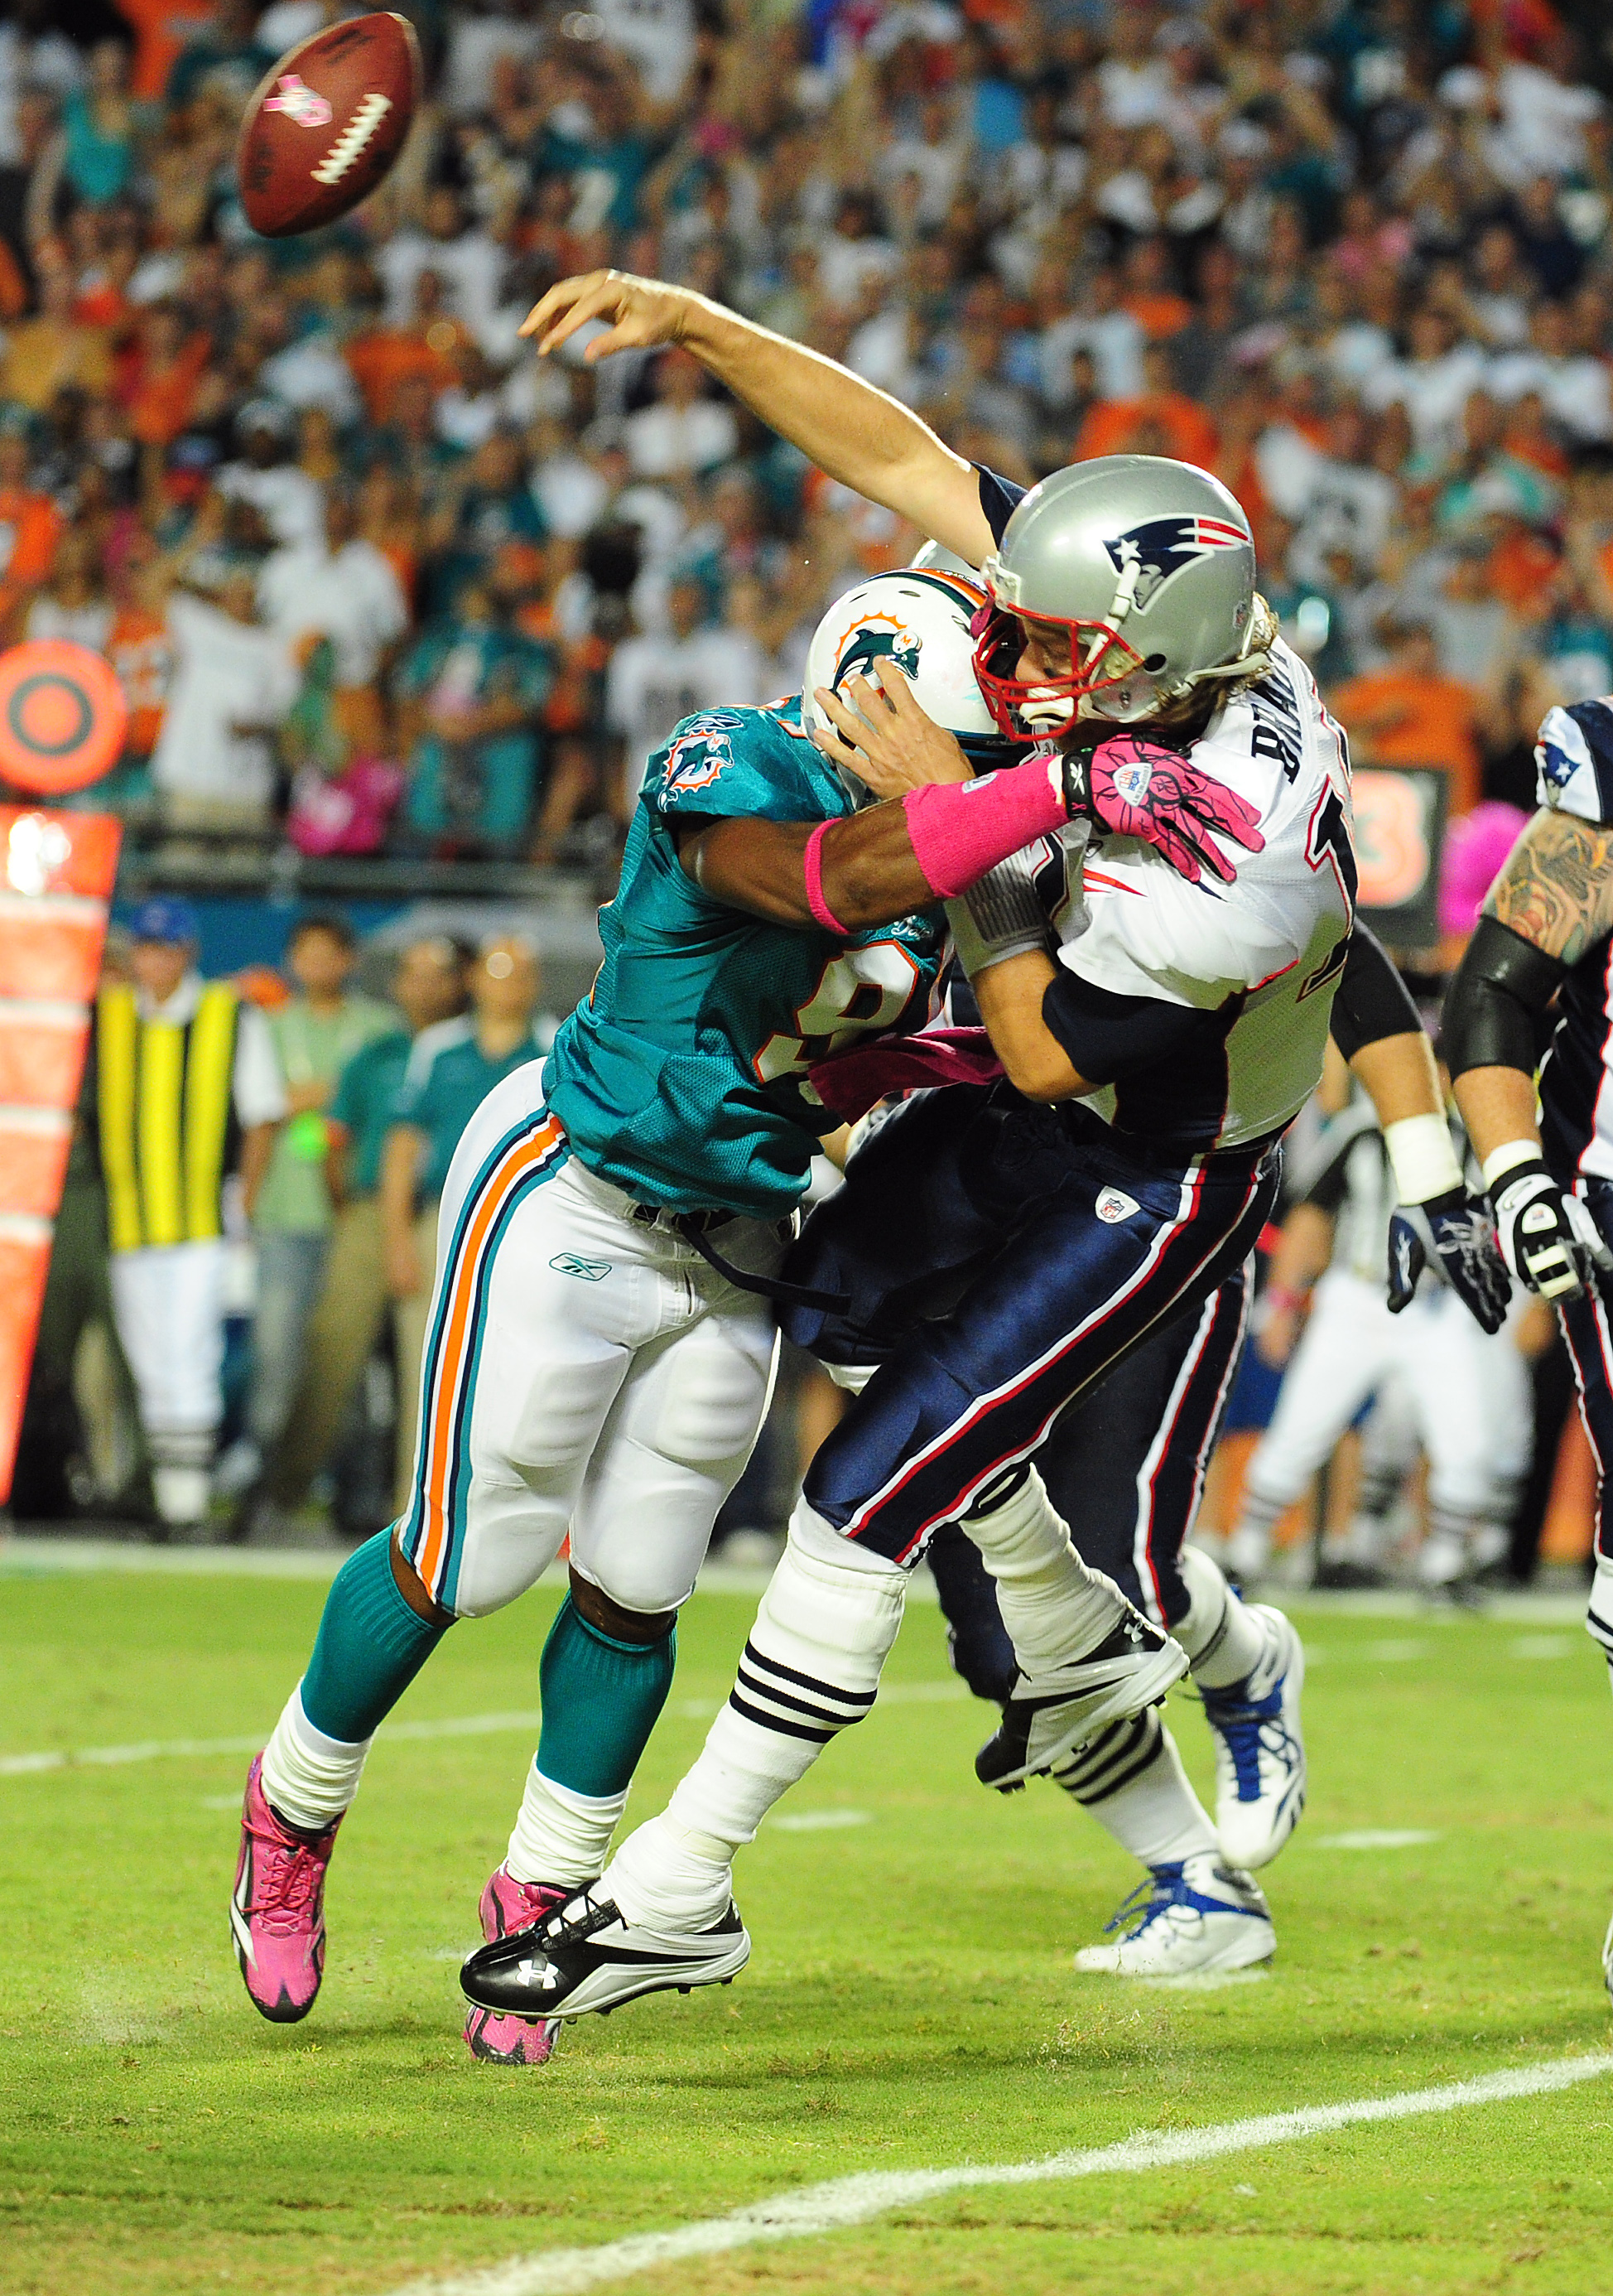 MIAMI - OCTOBER 4: Tom Brady #12 of the New England Patriots is hit as he passes by Cameron Wake #91 of the Miami Dolphins at Sun Life Field on October 4, 2010 in Miami, Florida. (Photo by Scott Cunningham/Getty Images)